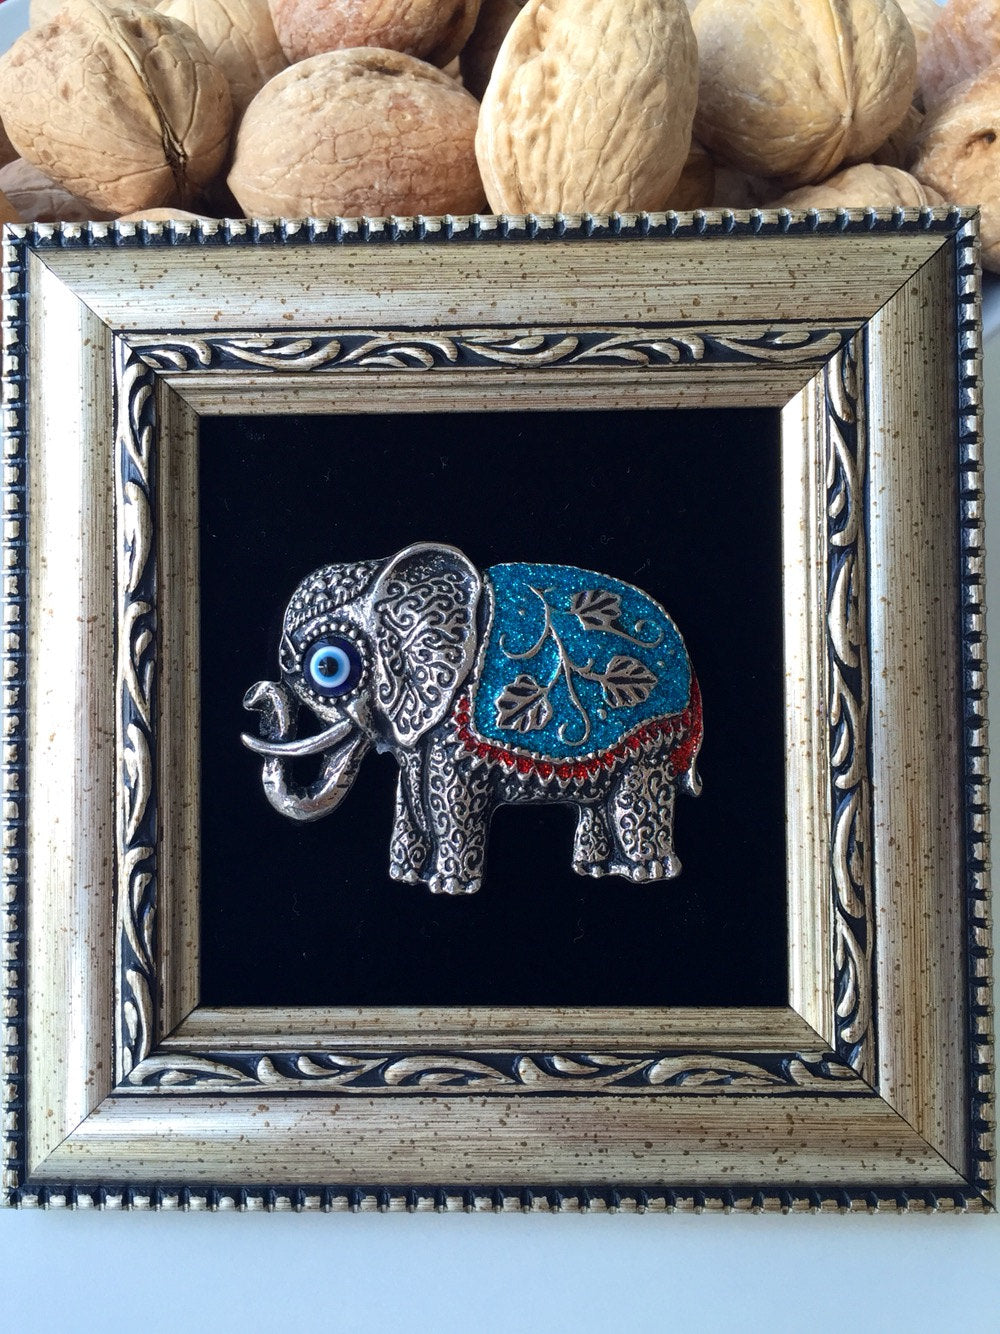 ... Framed Wall Décor   Elephant Wall Art   Evil Eye Wall Hanging   Evil  Eye Bead